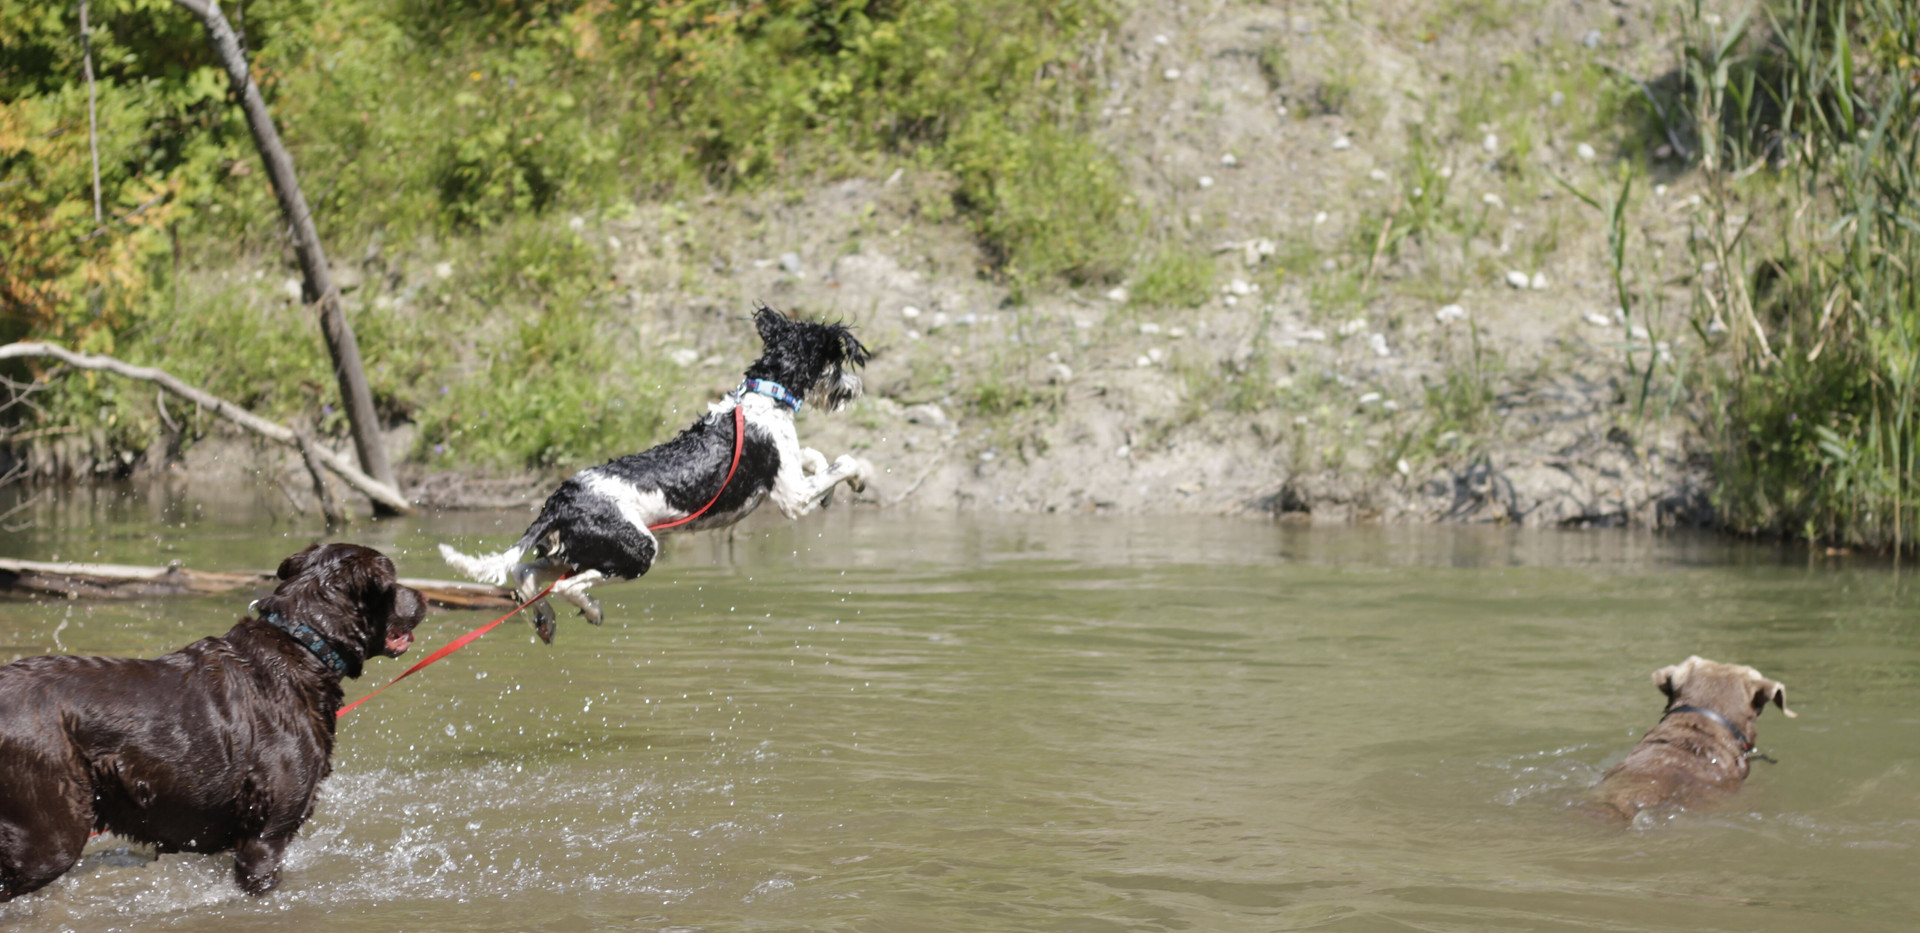 2018 DWH pic dogs at pond jumping.jpeg